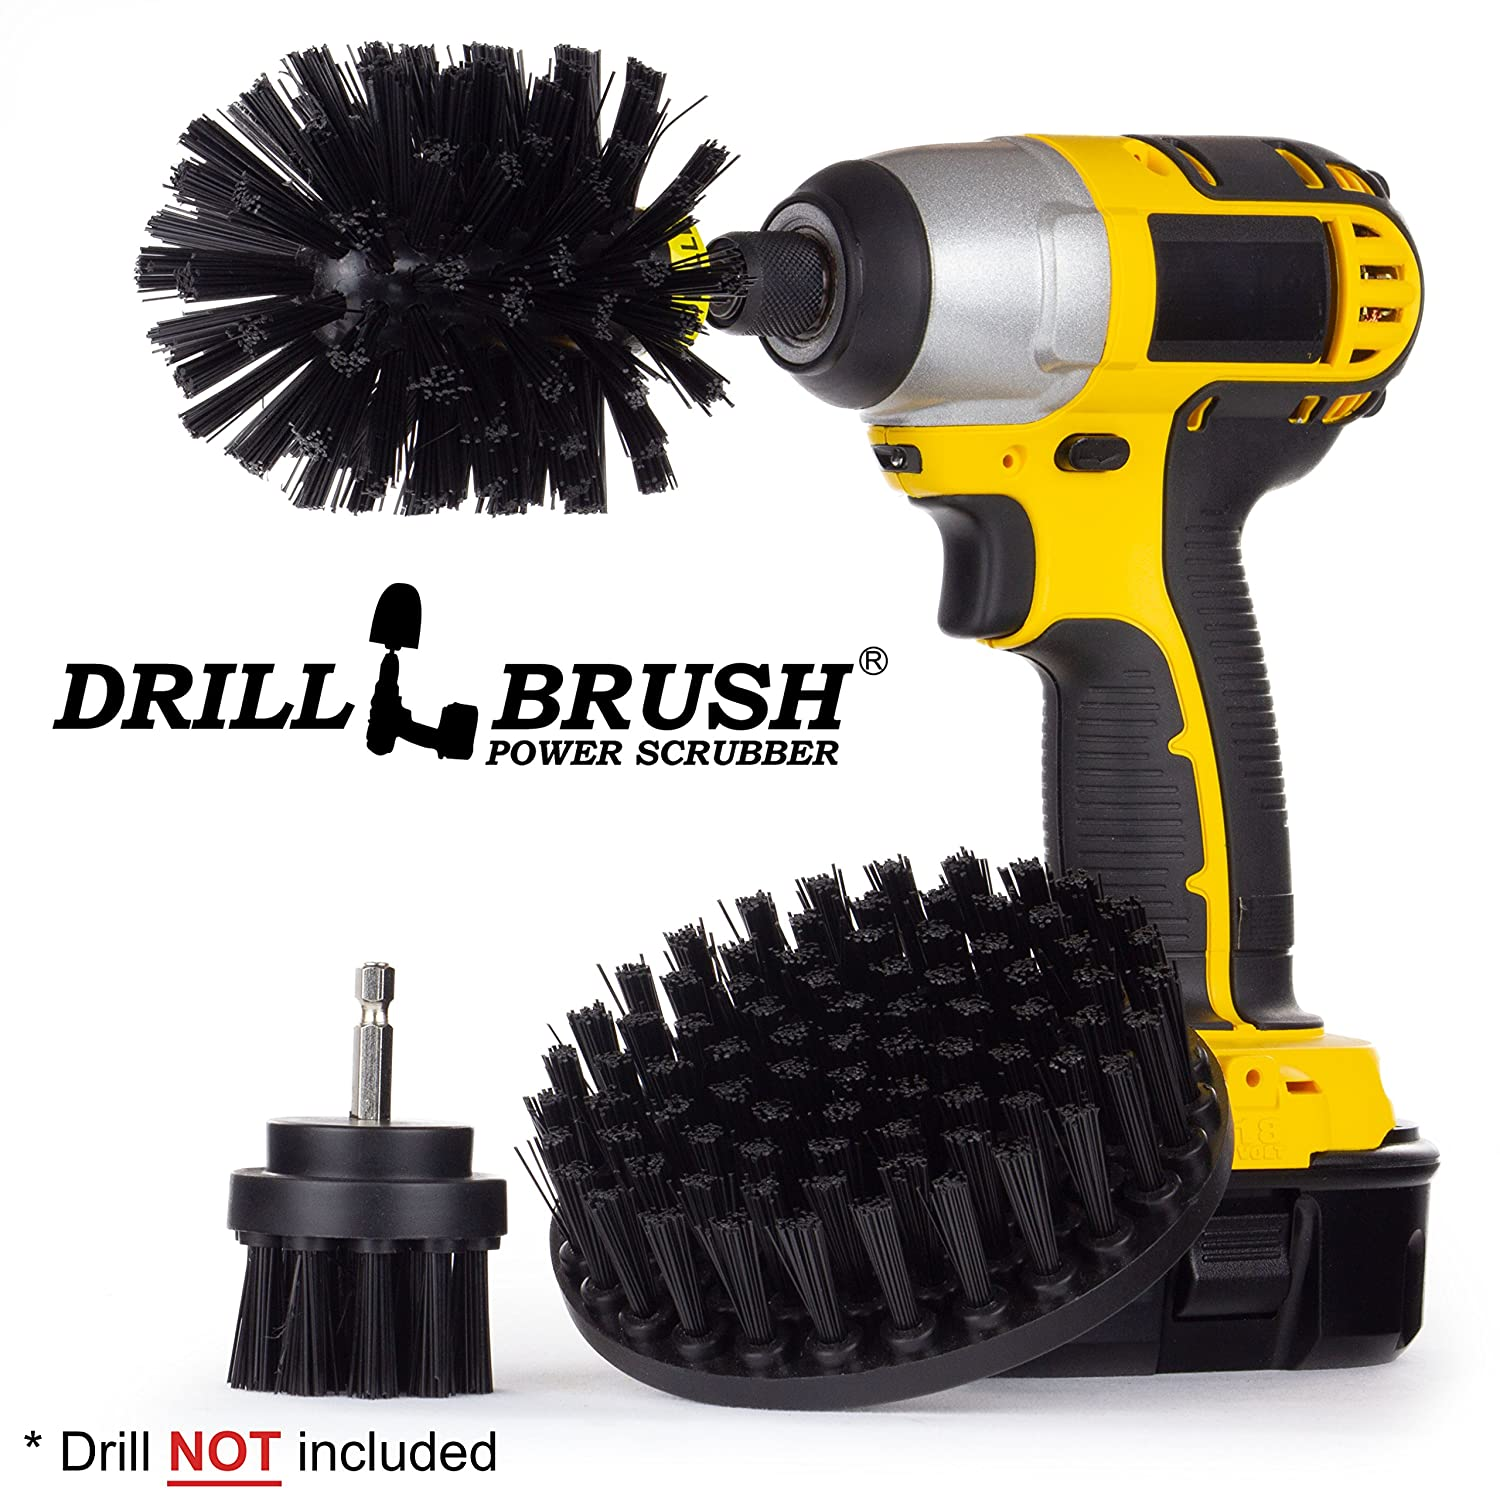 Heavy Duty Drill Powered Cleaning Brush Kit Used for Grill Cleaning and Other Heavy Duty Scrubbing Tasks